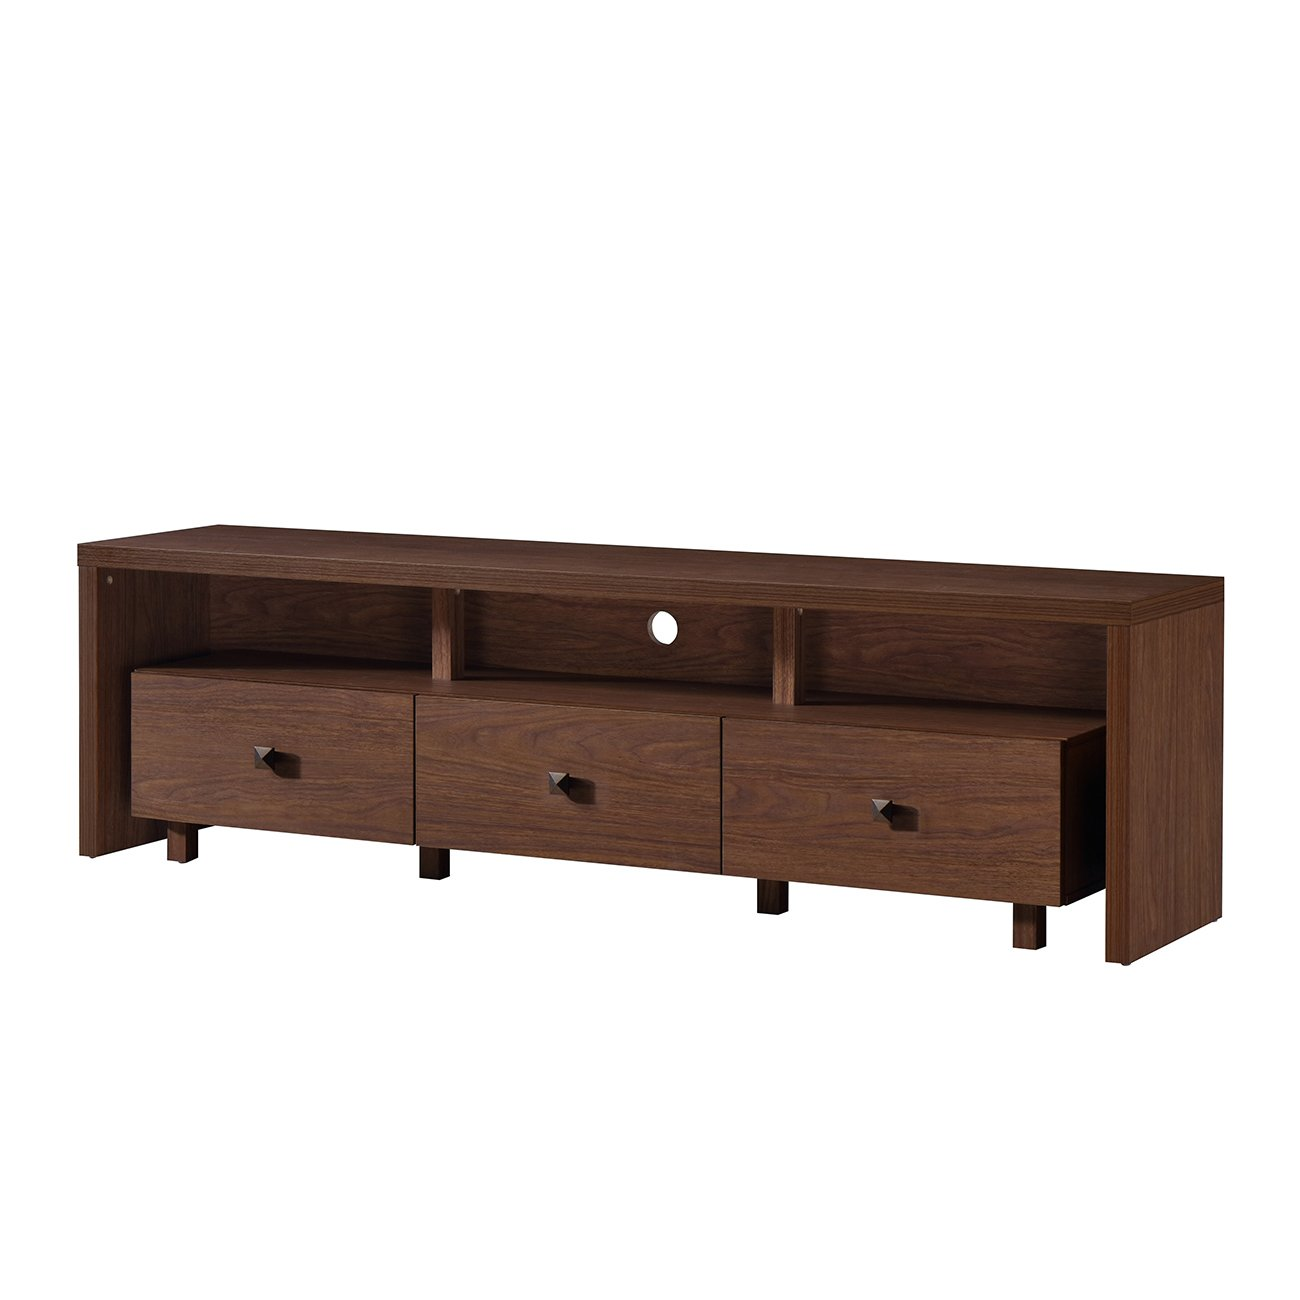 Techni Mobili Elegant TV Stand for TV s Up to 75 with Storage. Color Hickory